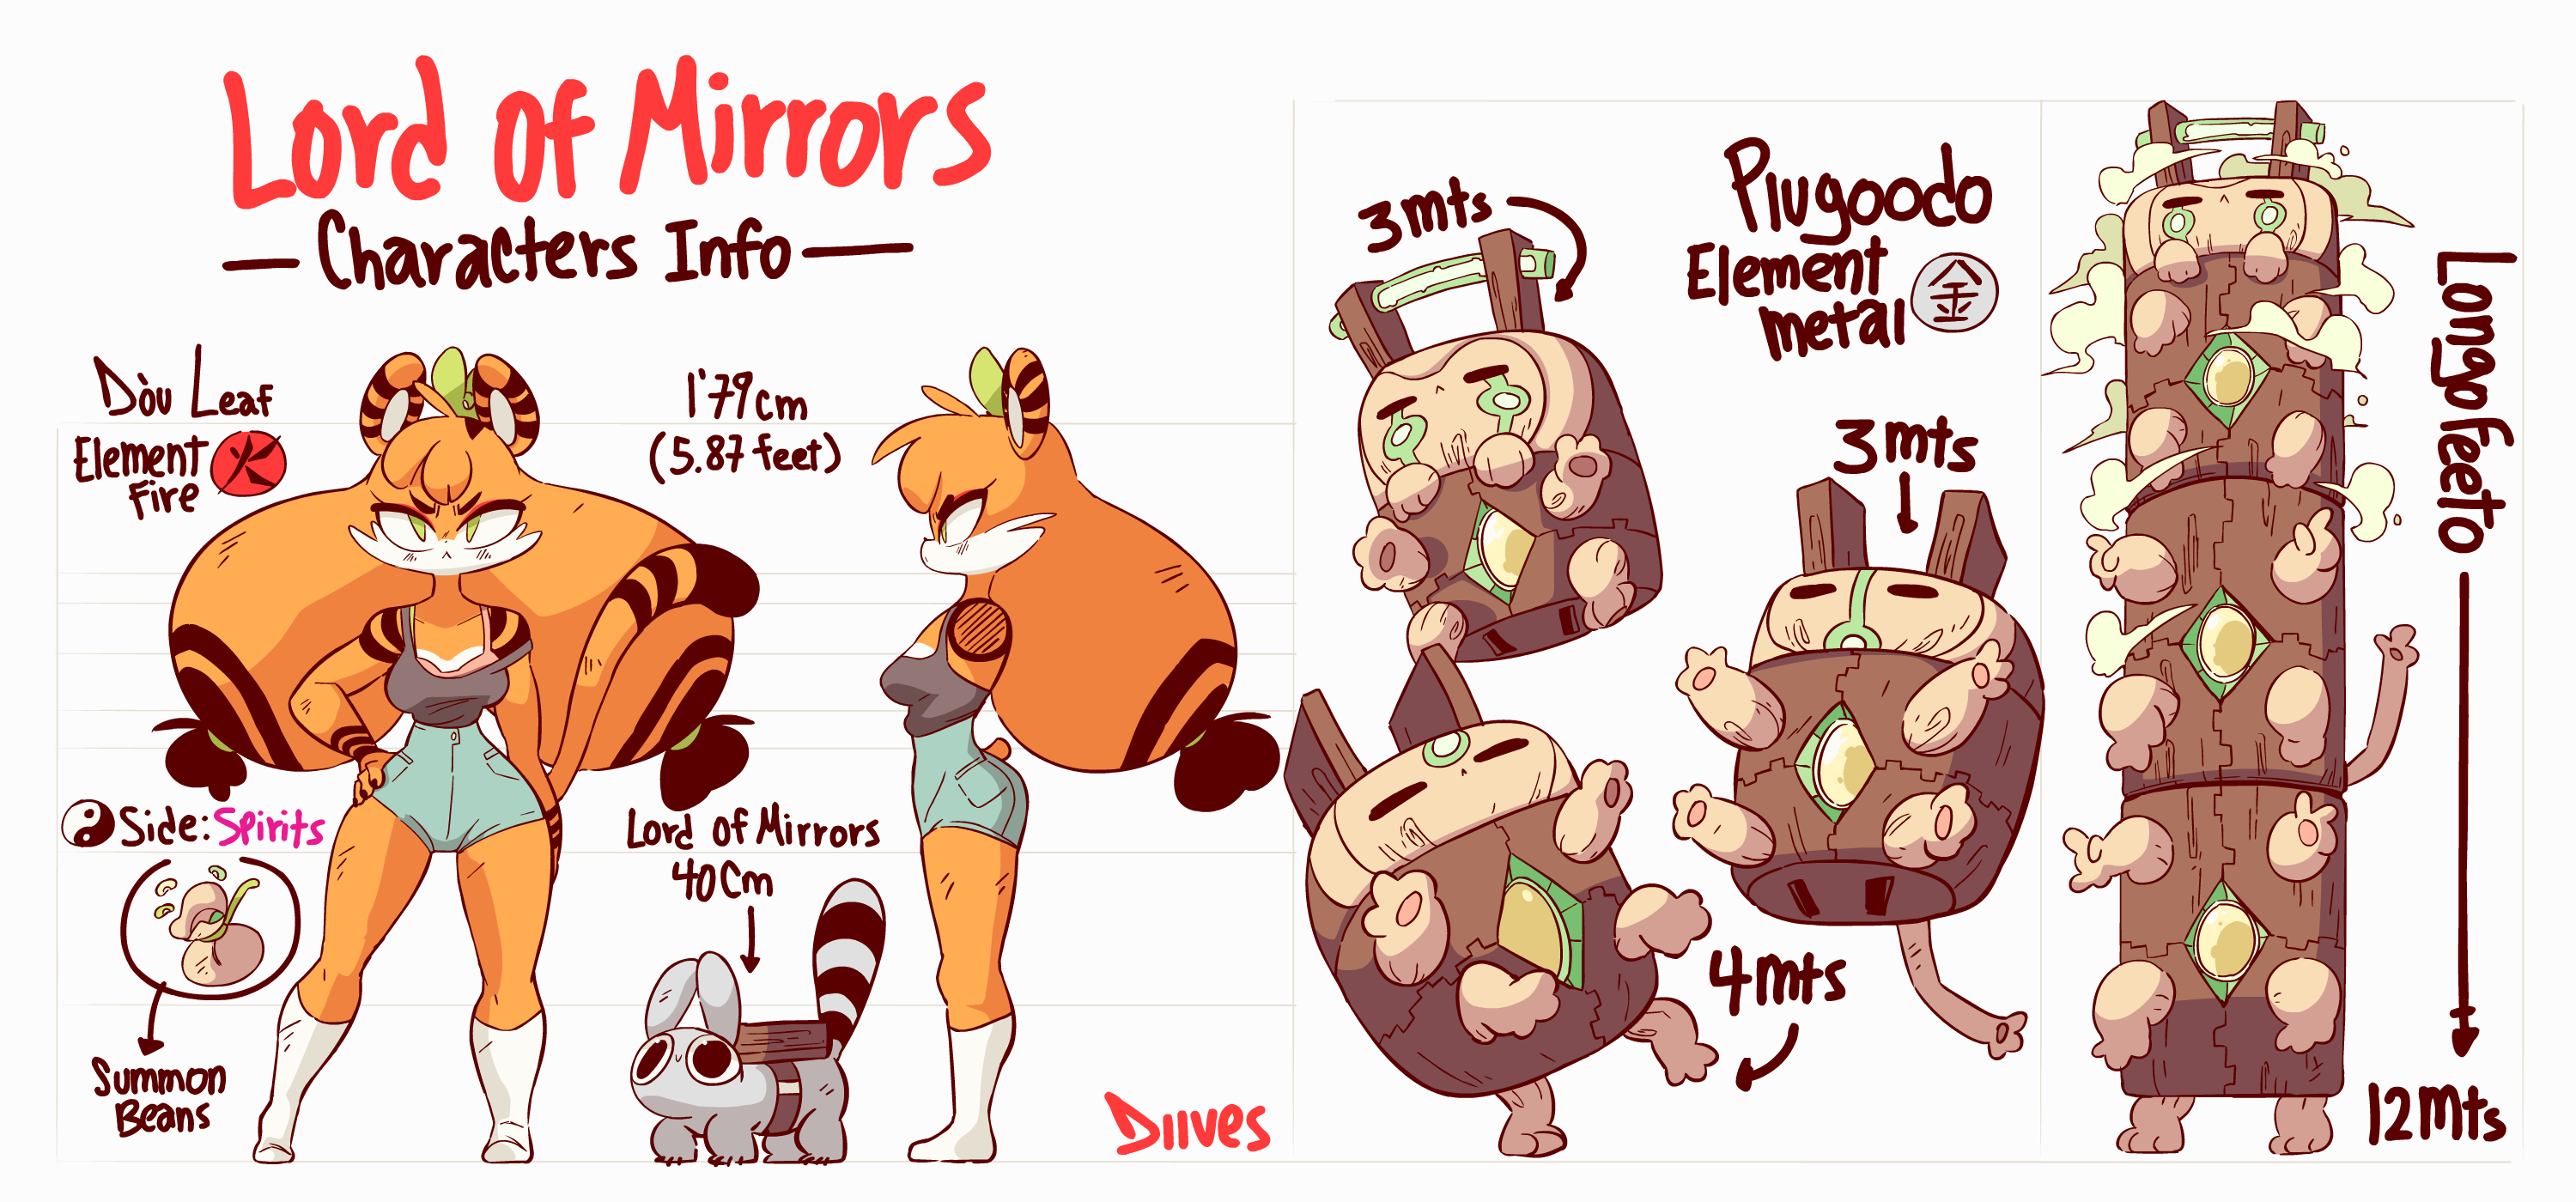 Lord Of Mirrors - Characters Info